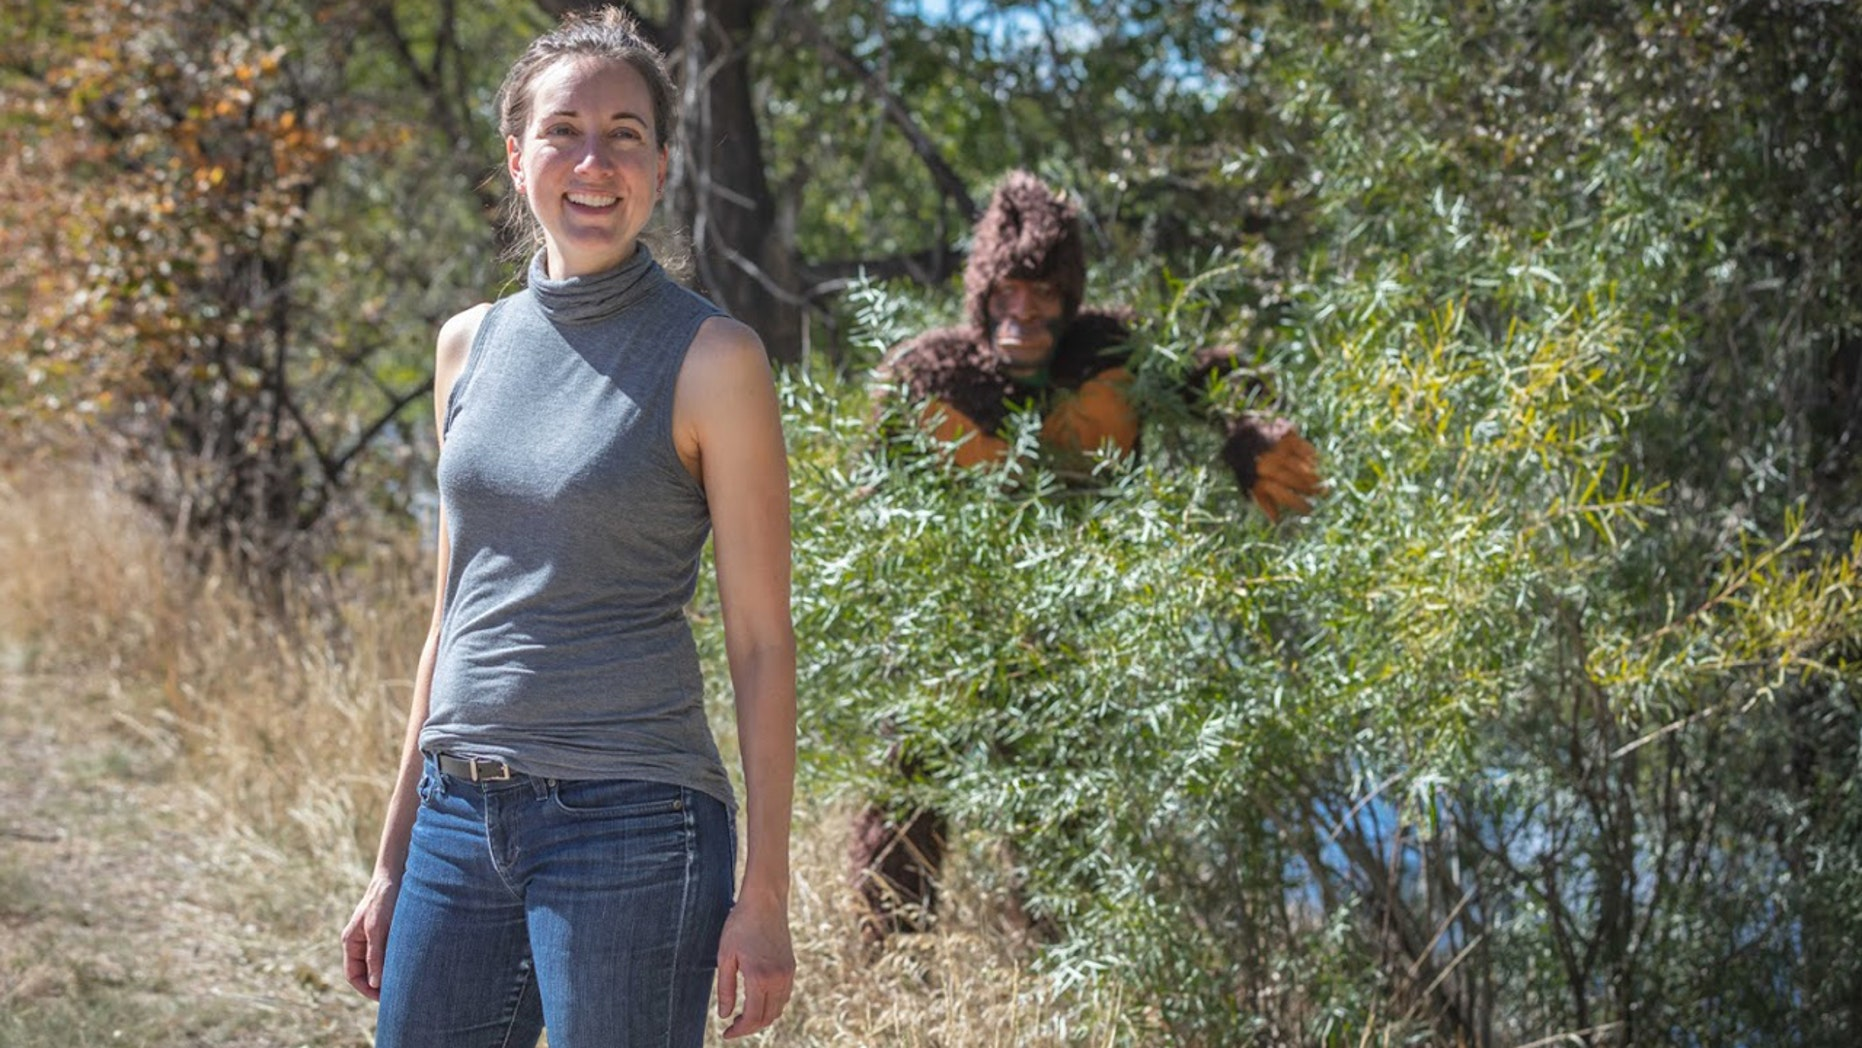 Journalist Laura Krantz explored her relative's fascination with Bigfoot in her new podcast 'Wild Thing.'